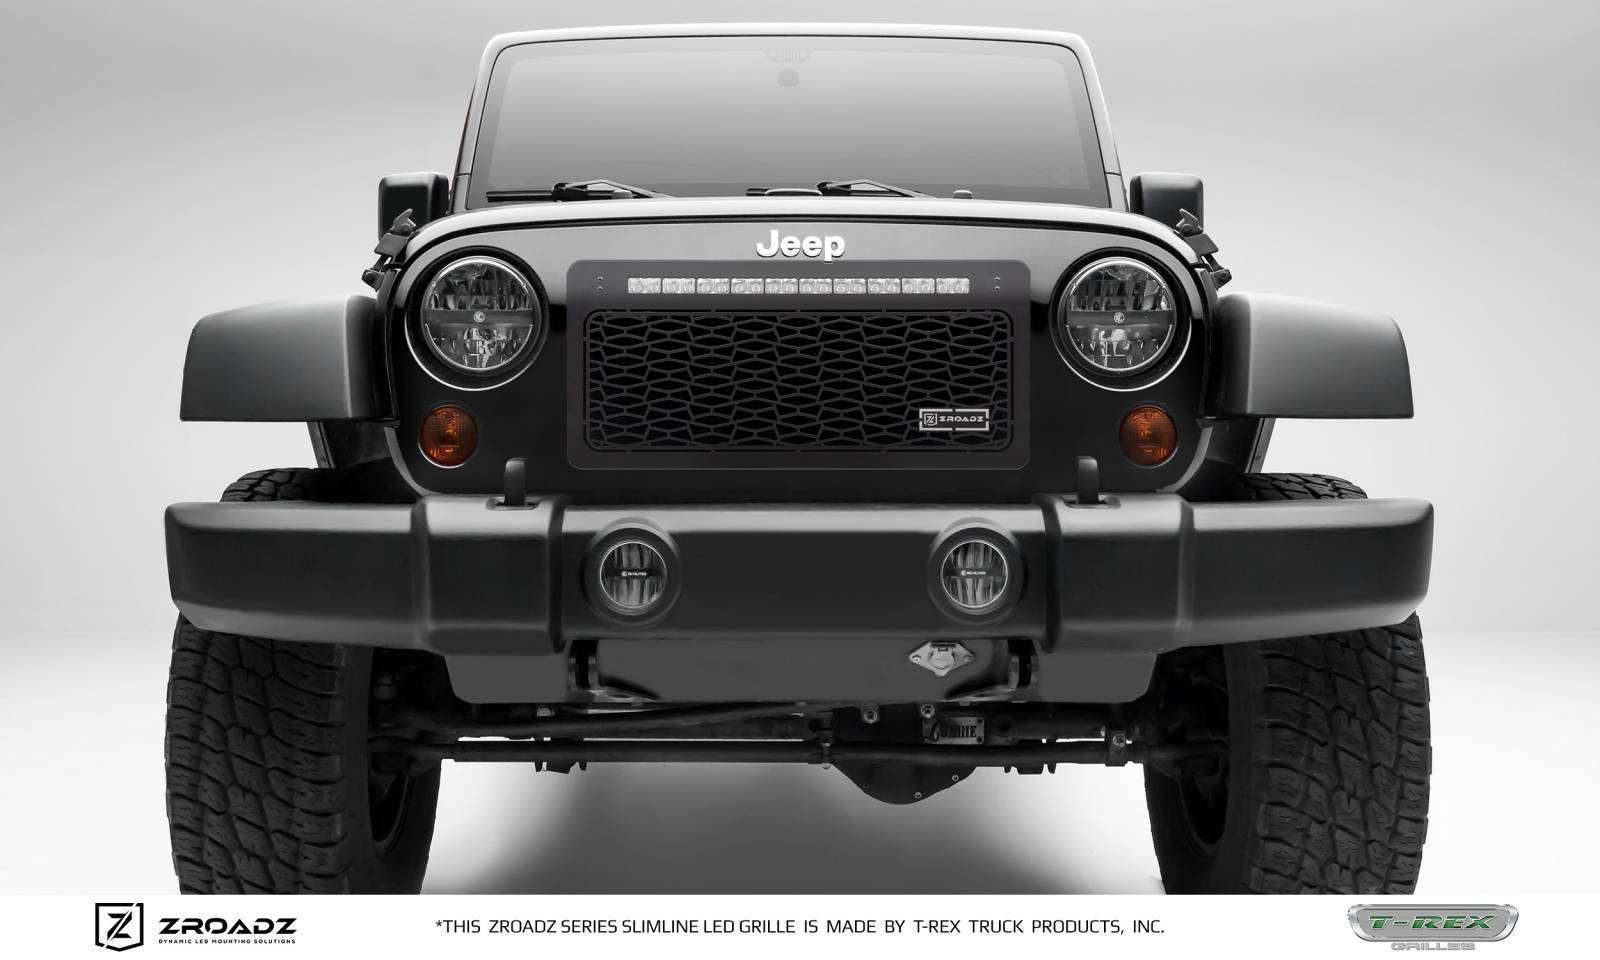 Jeep Wrangler - ZROADZ Series - Main Insert - Grille w/ One 20 Inch Slim Line Single Row LED Light Bar - Includes Universal Wiring Harness - Part# Z314831-20T